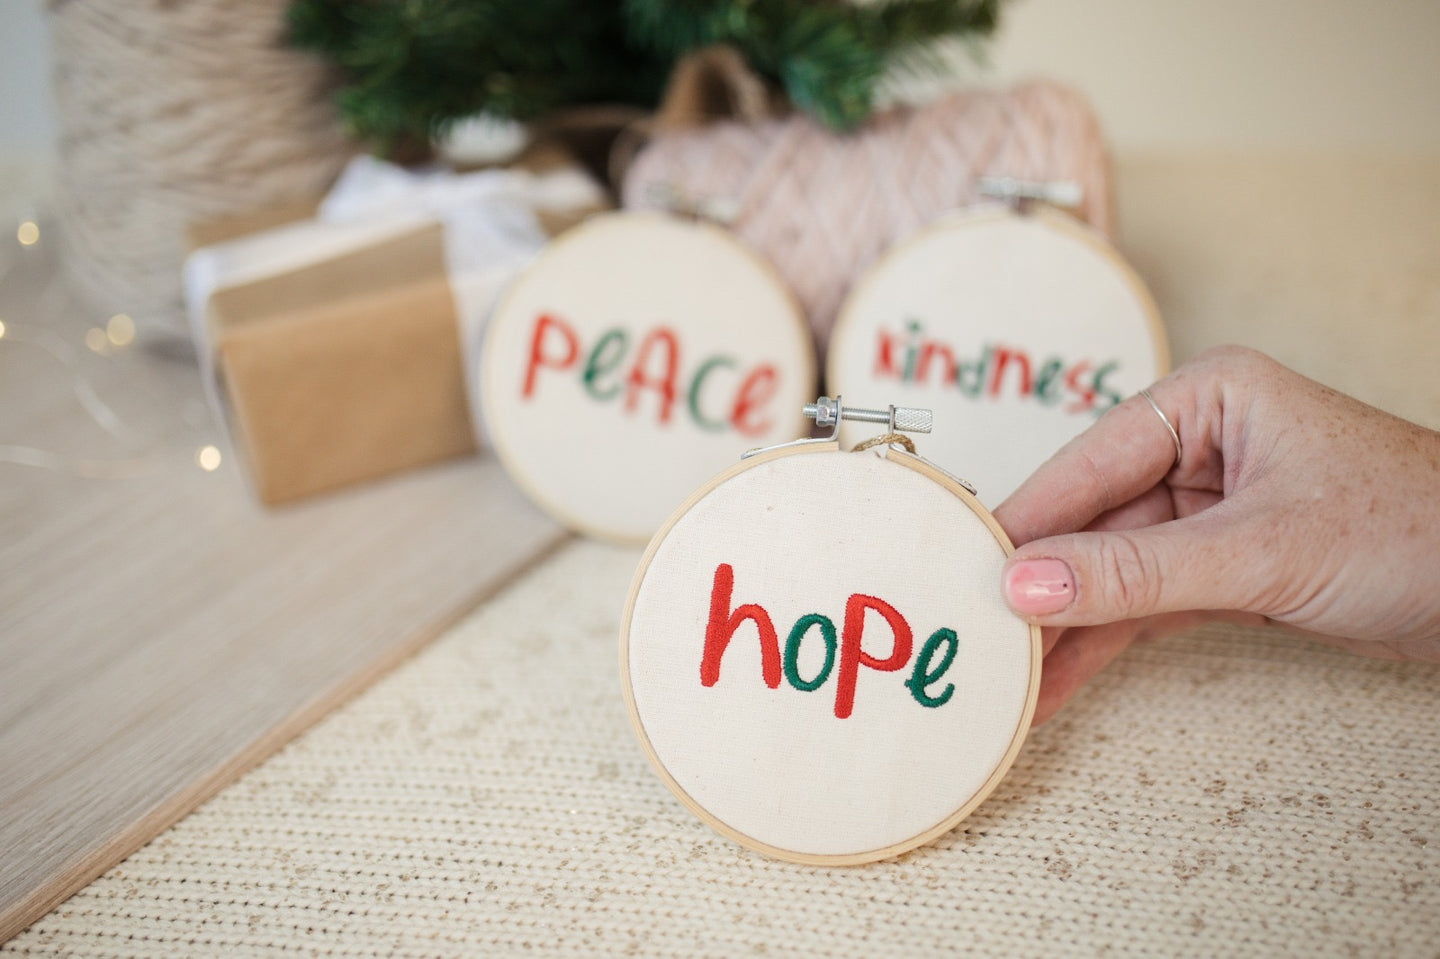 Hope, Peace & Kindness 4